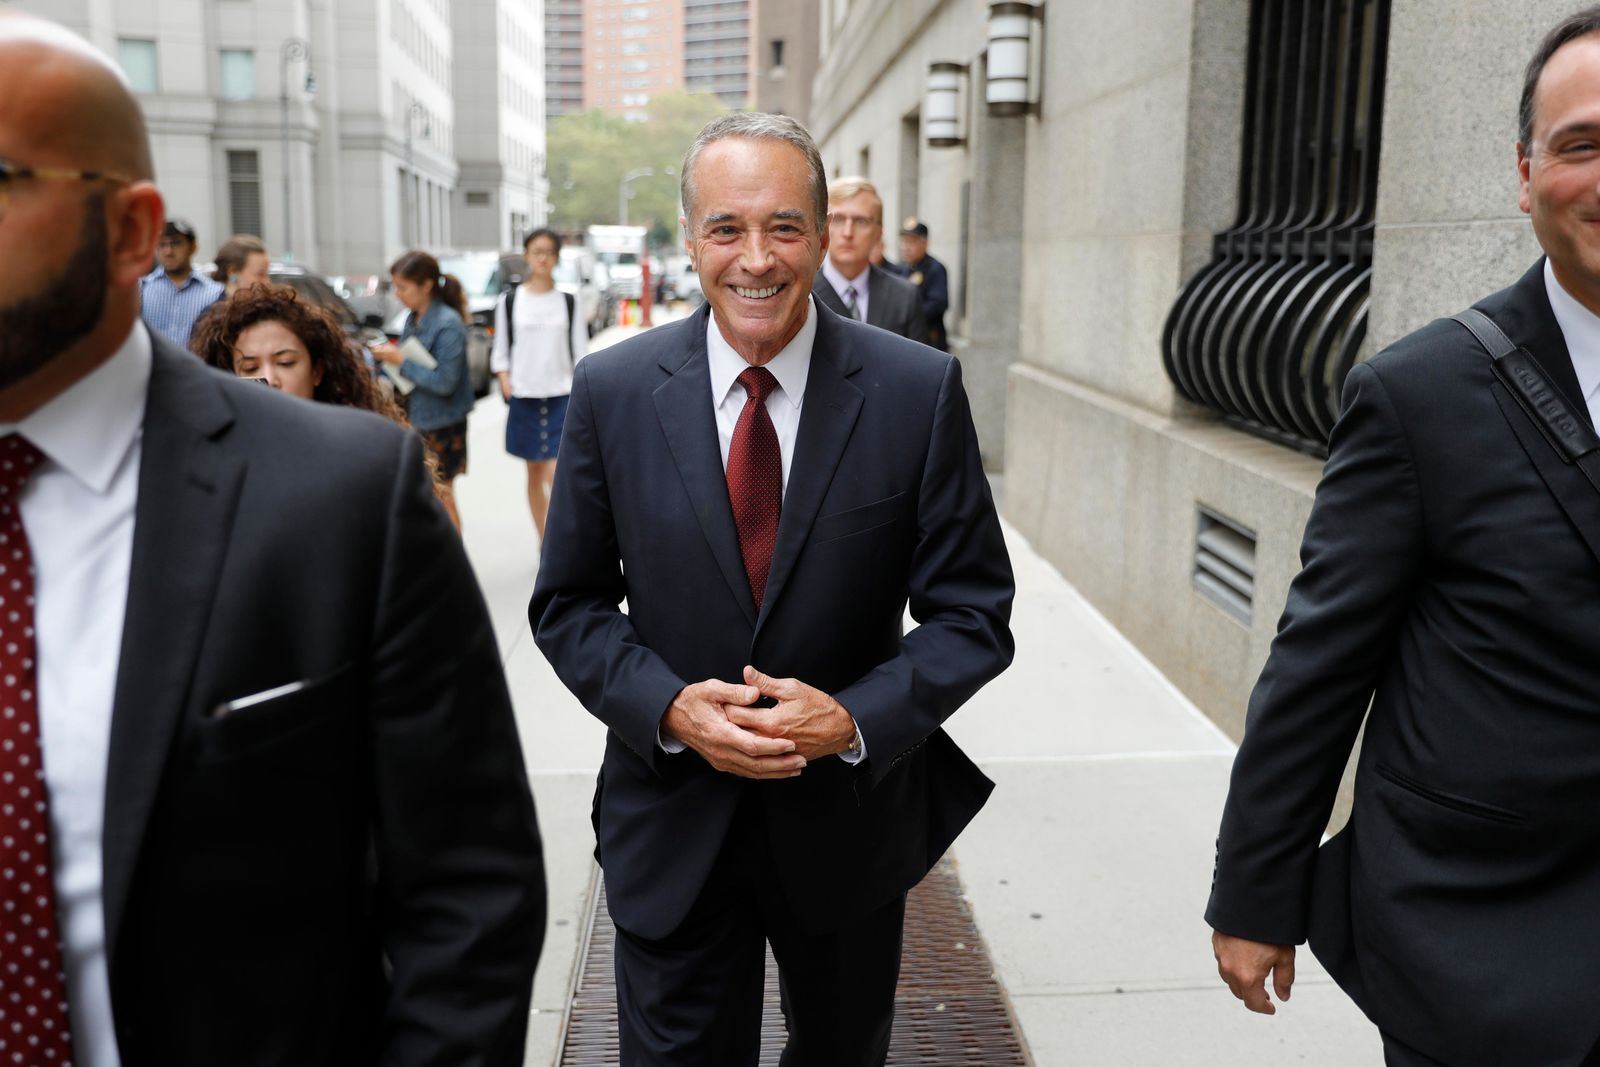 U.S. Rep. Chris Collins, R-N.Y., leaves the courthouse after a pretrial hearing in his insider-trading case, Thursday, Sept. 12, 2019, in New York. (AP Photo/Seth Wenig)